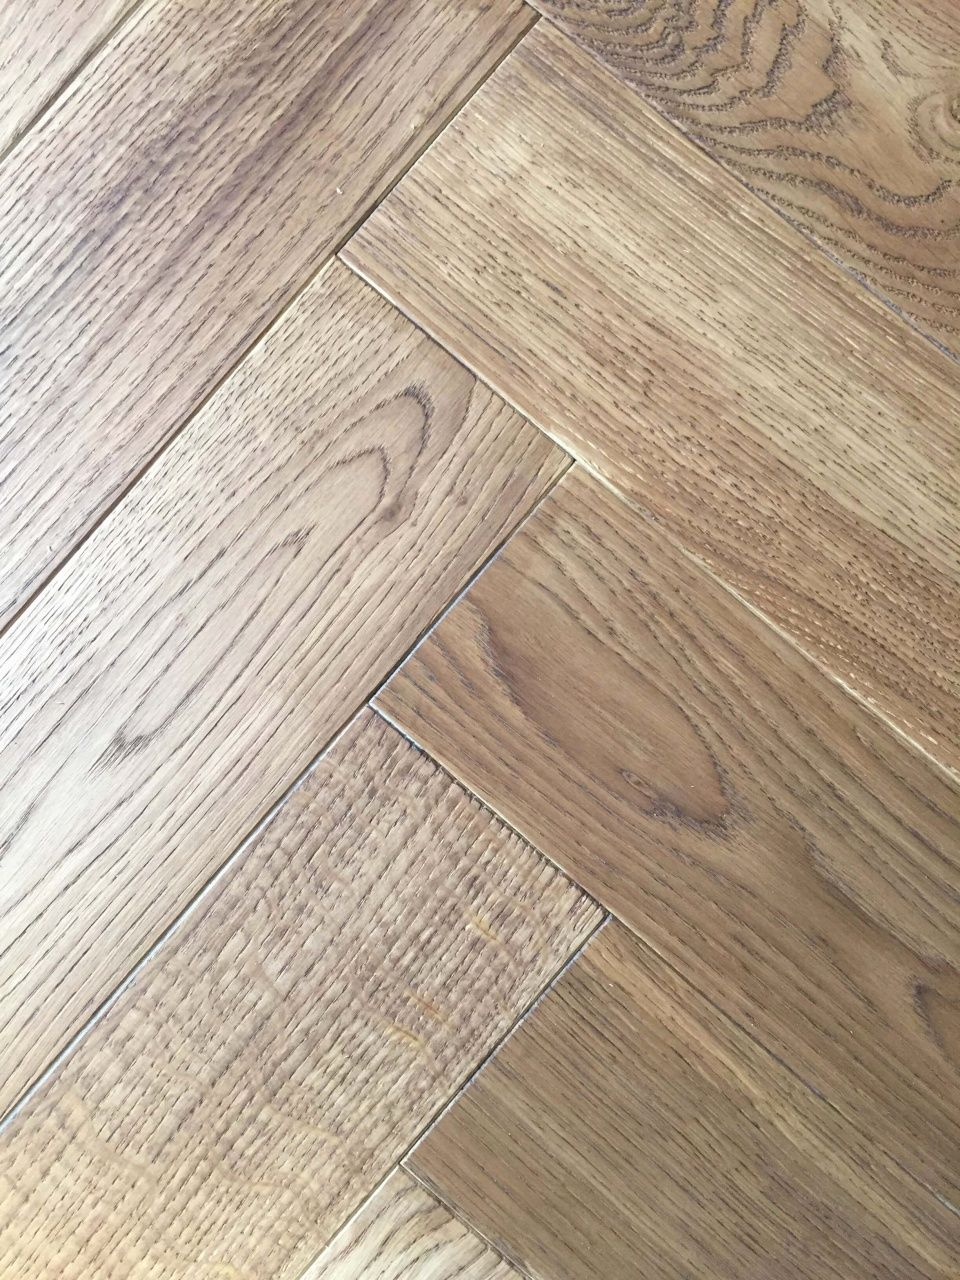 Labor Cost To Install Vinyl Plank Flooring In 2020 Engineered Wood Floors Wood Laminate Flooring Vinyl Sheet Flooring